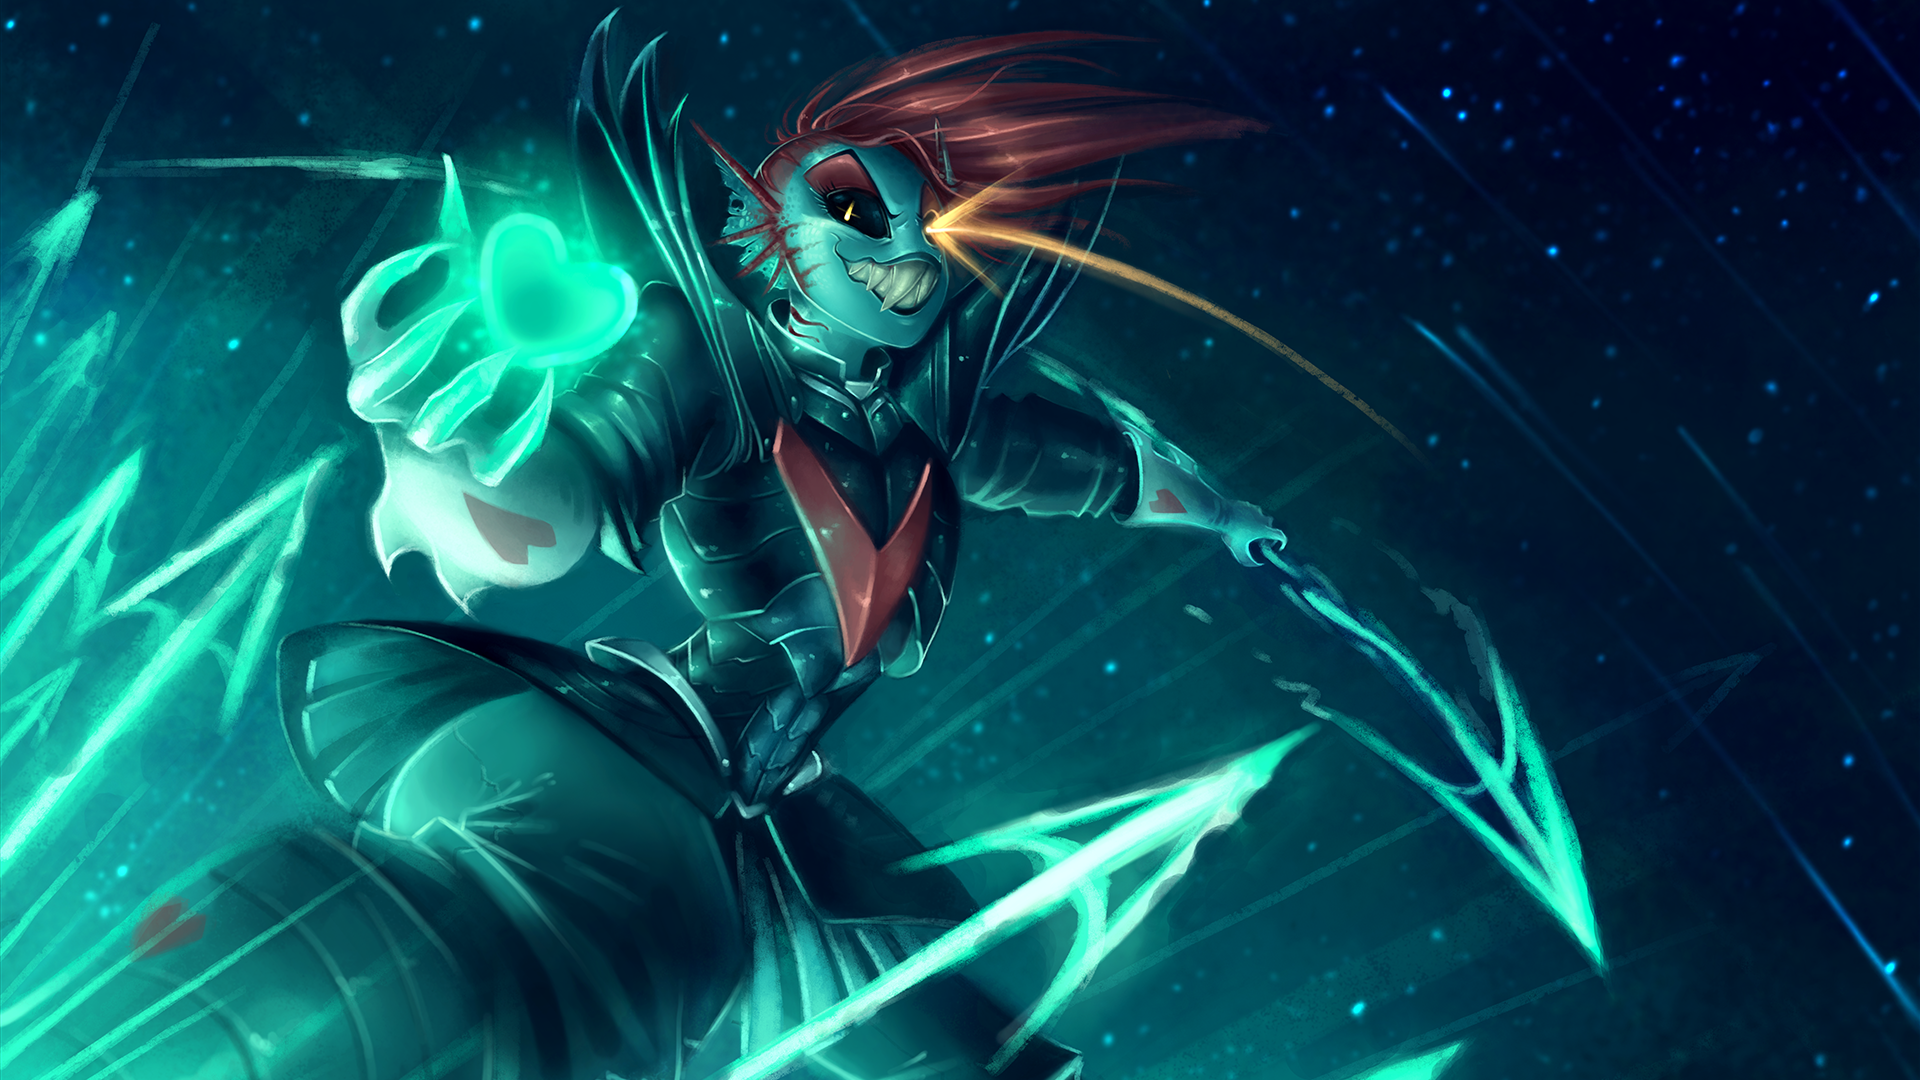 General 1920x1080 Undyne Undyne Undertale redhead spear heart armor weapon teeth blue skin turquoise cyan